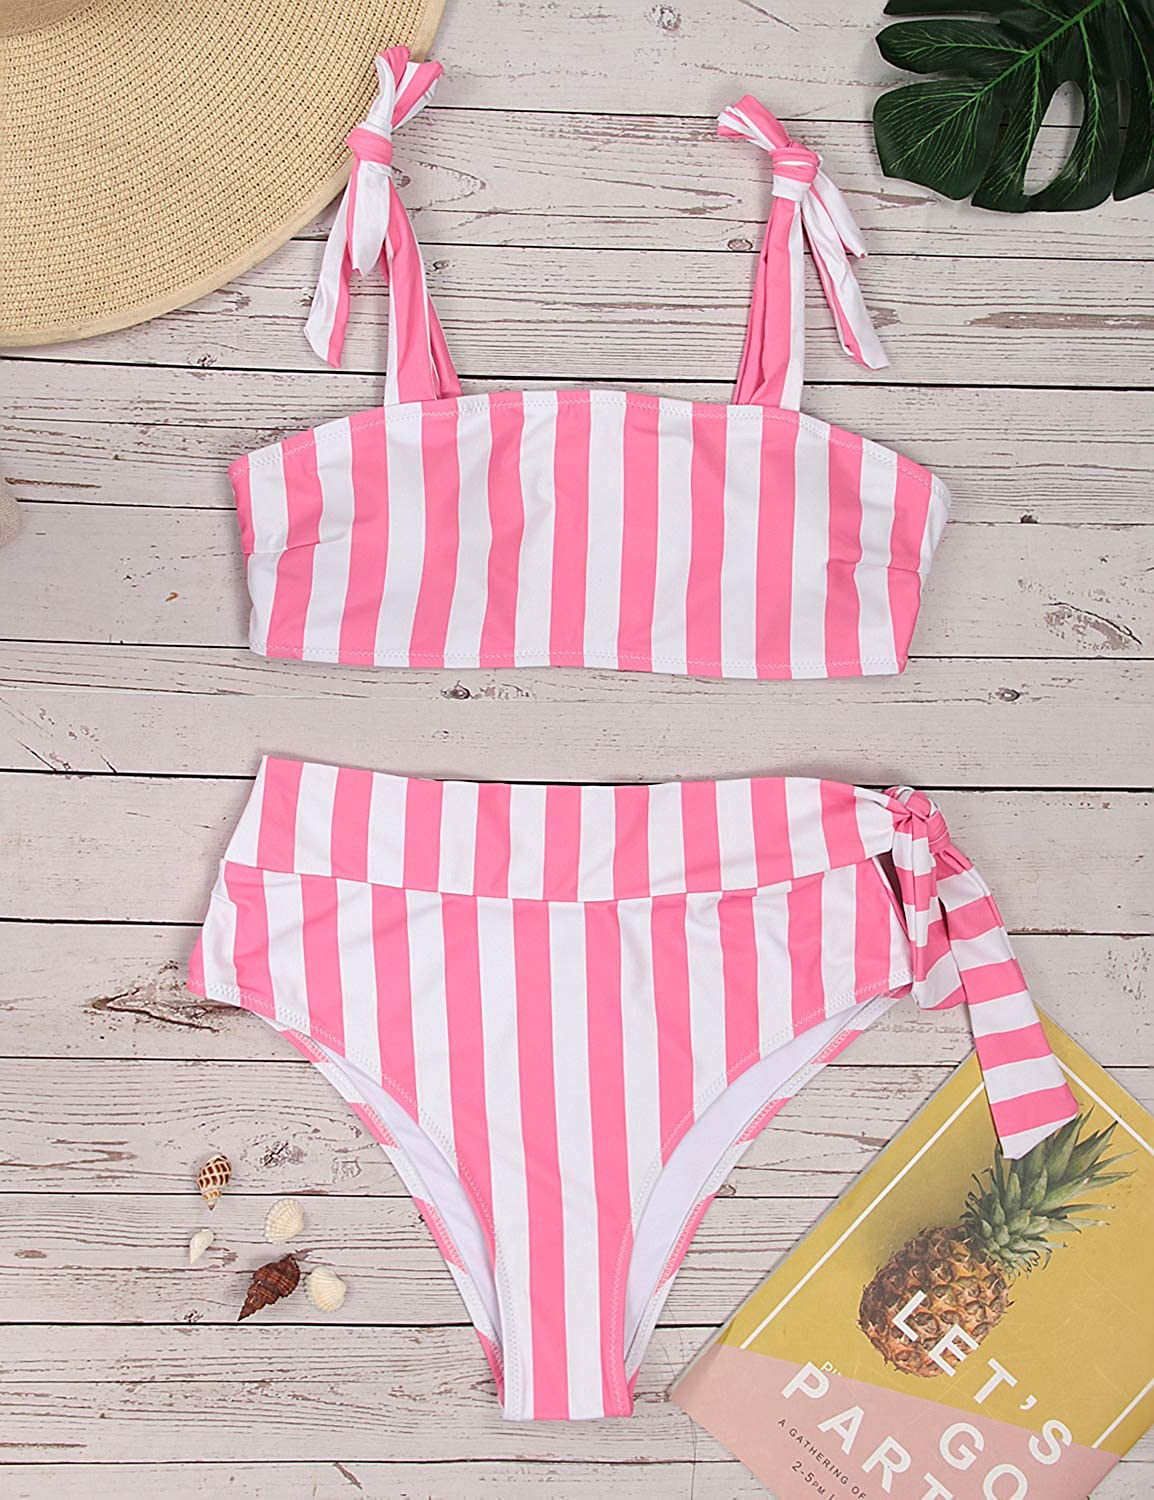 Blooming Jelly Womens High Waisted Bikini Set Tie Knot Bathing Suit Striped Hi Rise Two Piece Swimsuits: Clothing